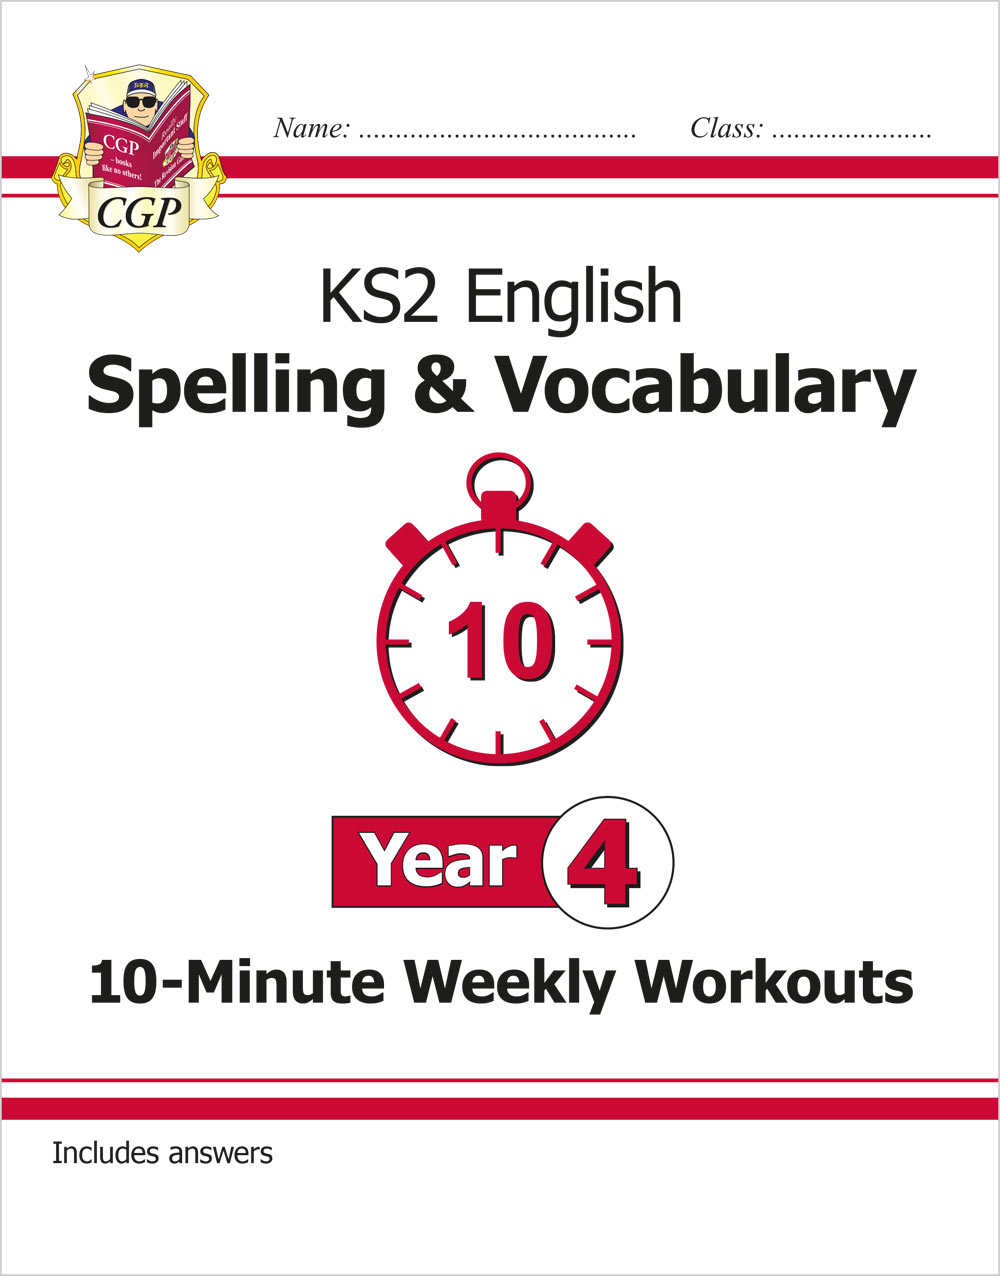 E4VSXW21 - New KS2 English 10-Minute Weekly Workouts: Spelling & Vocabulary - Year 4